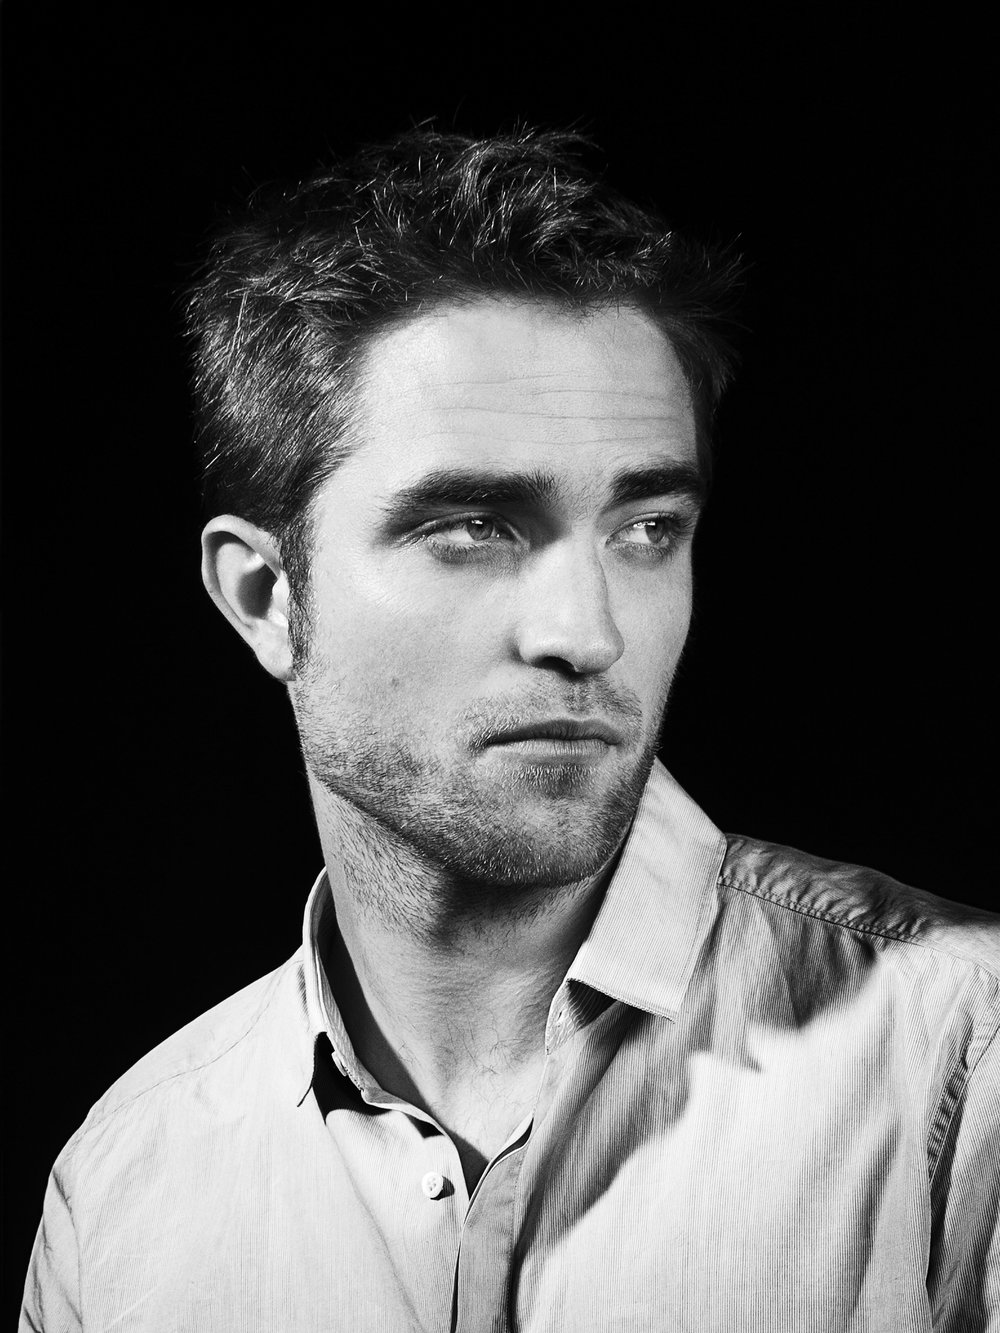 B_ROBERT_PATTINSON_0060_NBA.jpg